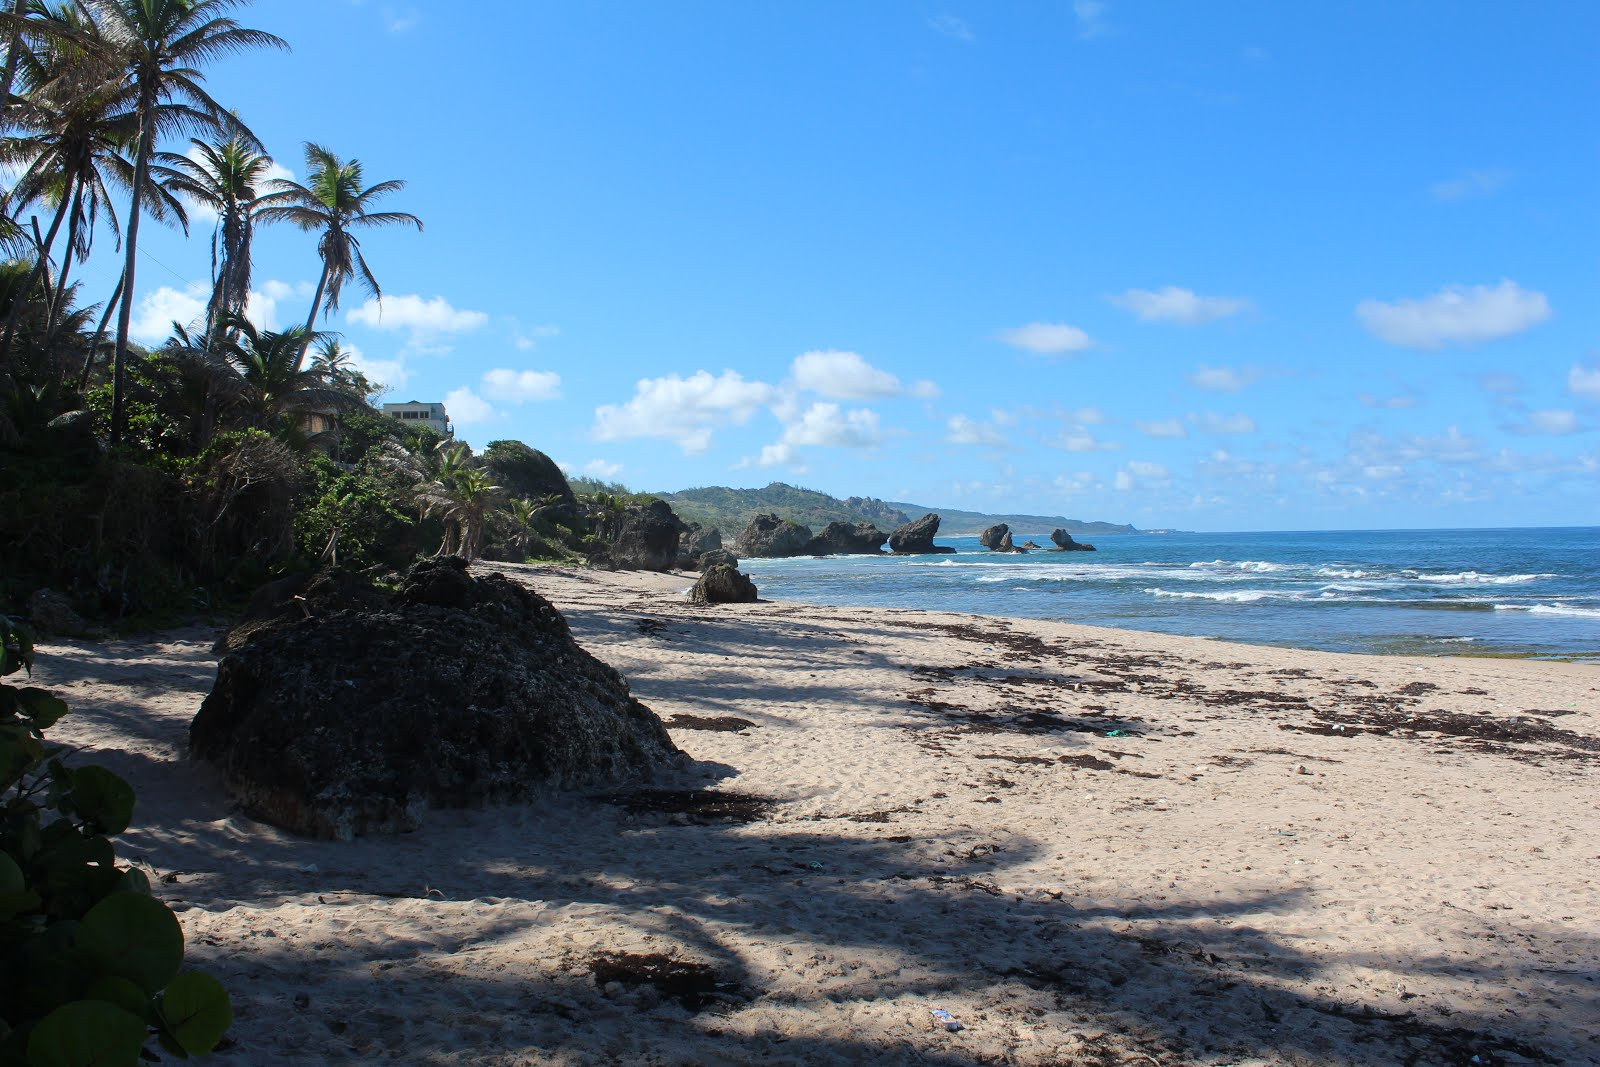 Rugged Beach of Bathsheba St Joseph Barbados